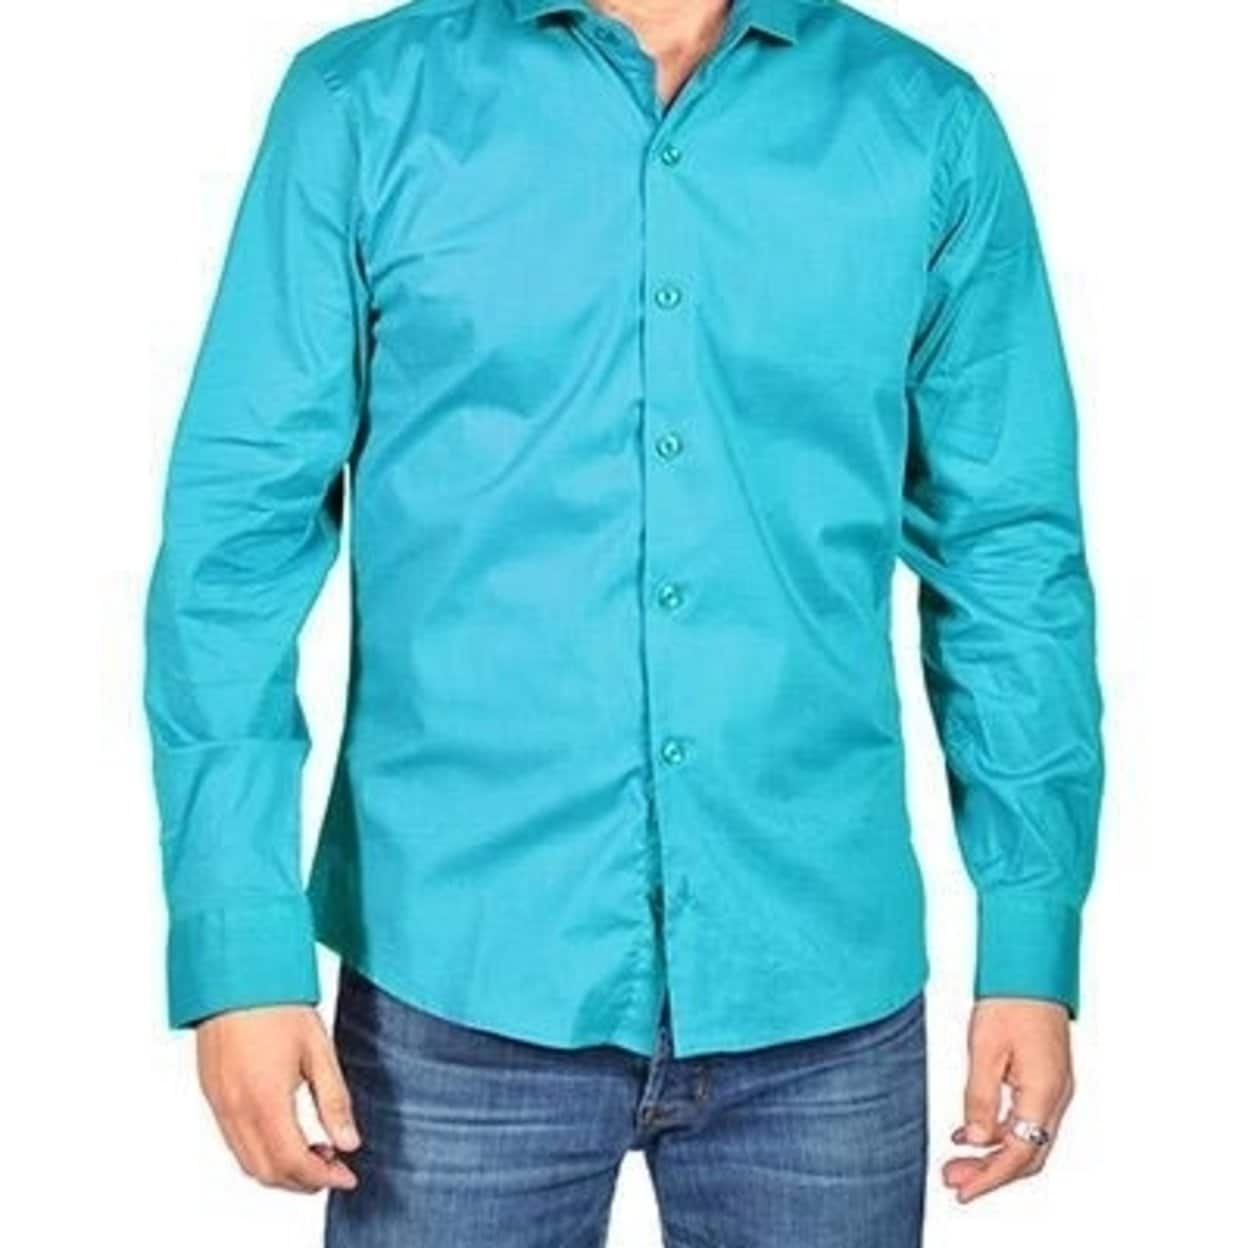 Men/'s Standard Fit Long Sleeve NEW Denim Button-Down Green Shirt M-L-XL